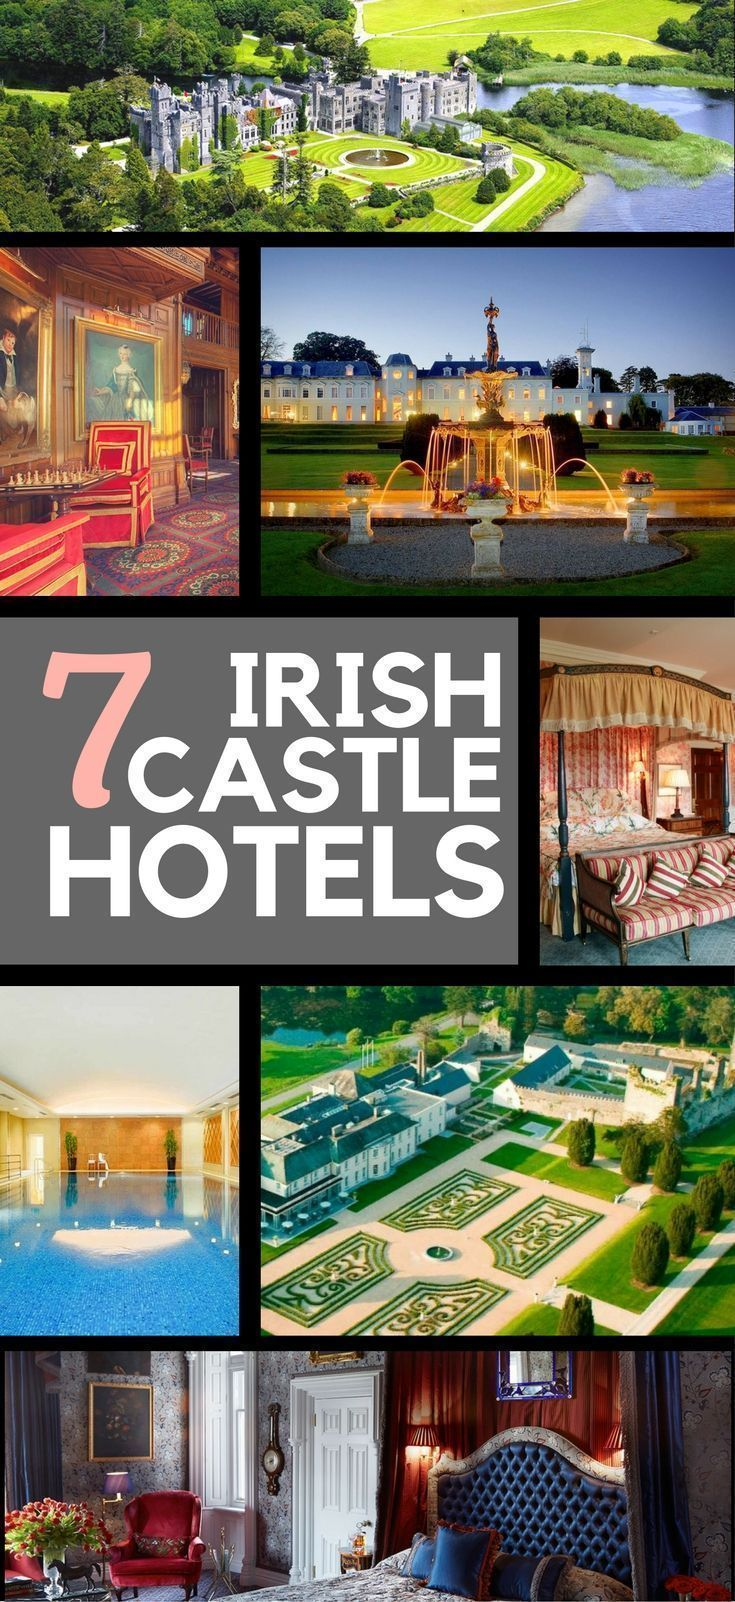 The 7 Best Castles To Stay In Ireland With Kids For A Luxury Family Vacation And